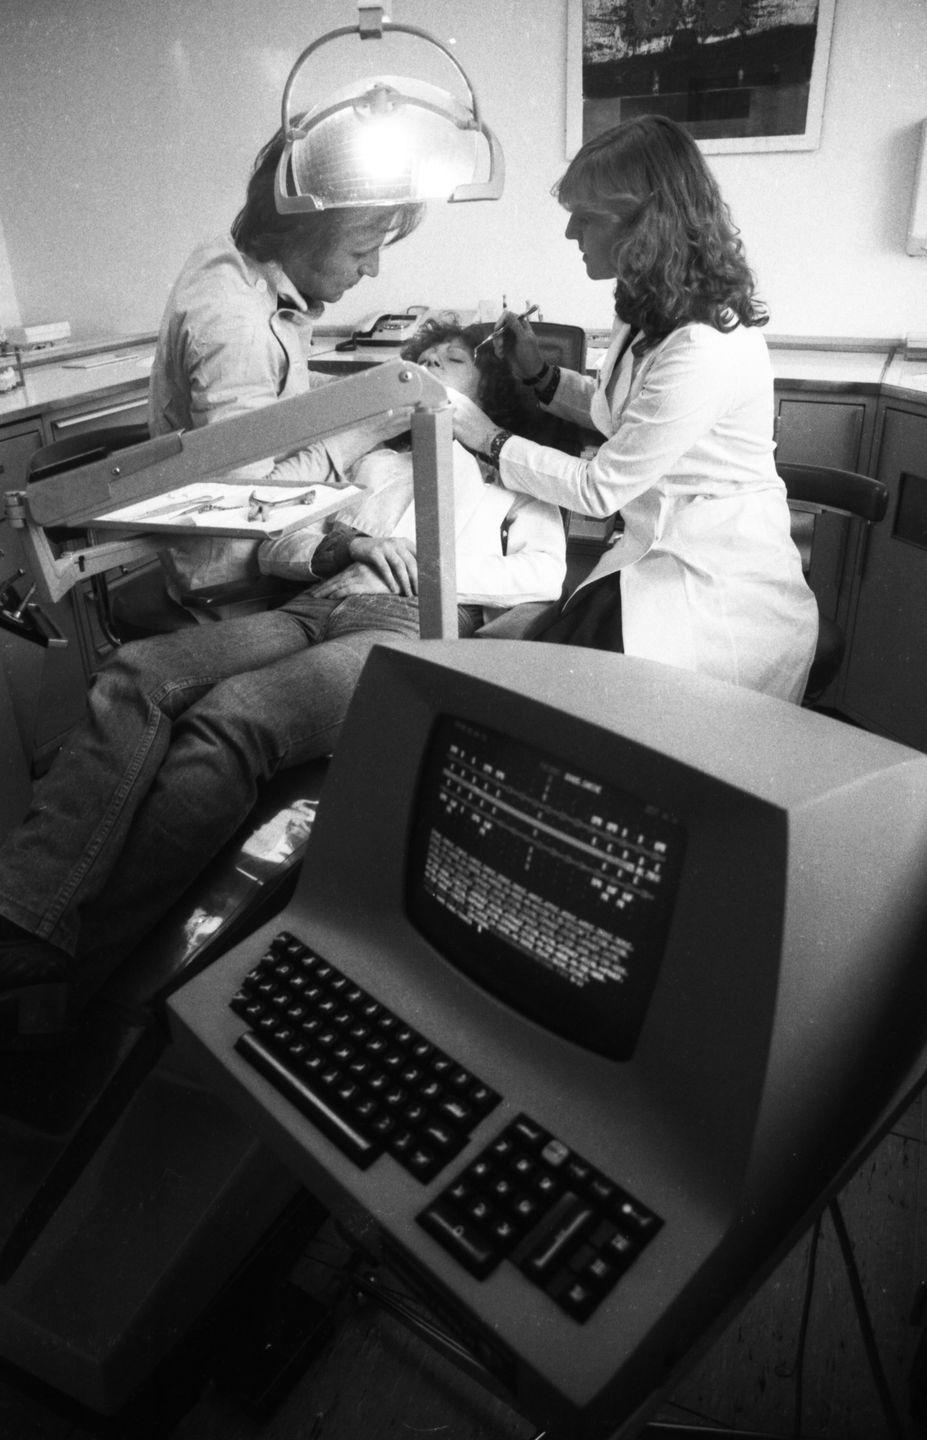 <p>Technology truly began expanding to every facet of the economy and workforce. Here, a dentist and technician use a computer for a patient's checkup in 1979. </p>